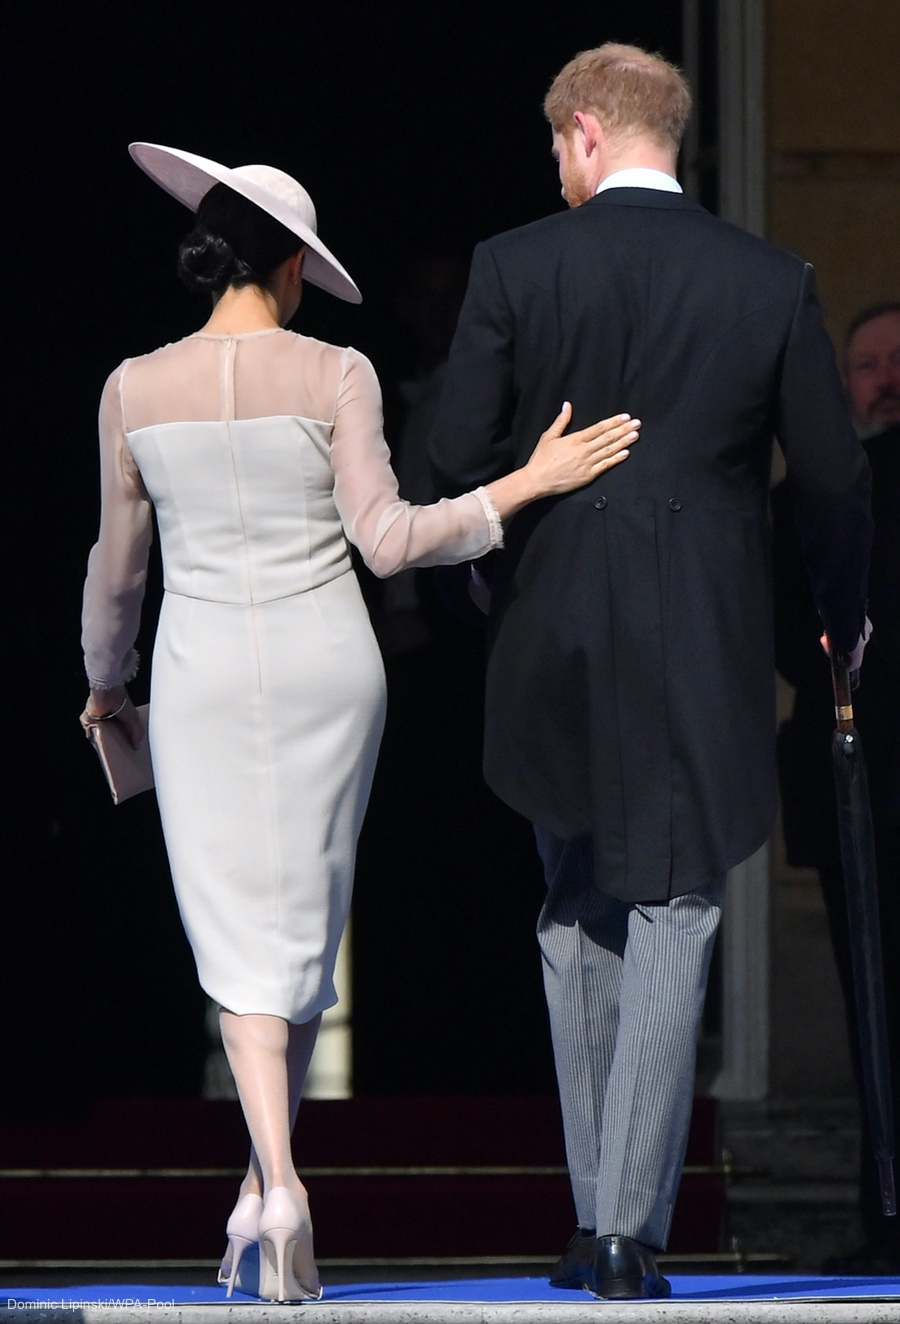 Newlyweds Meghan and Harry share a cute moment as they walk out of the party. Meghan places her hand on harry's back.